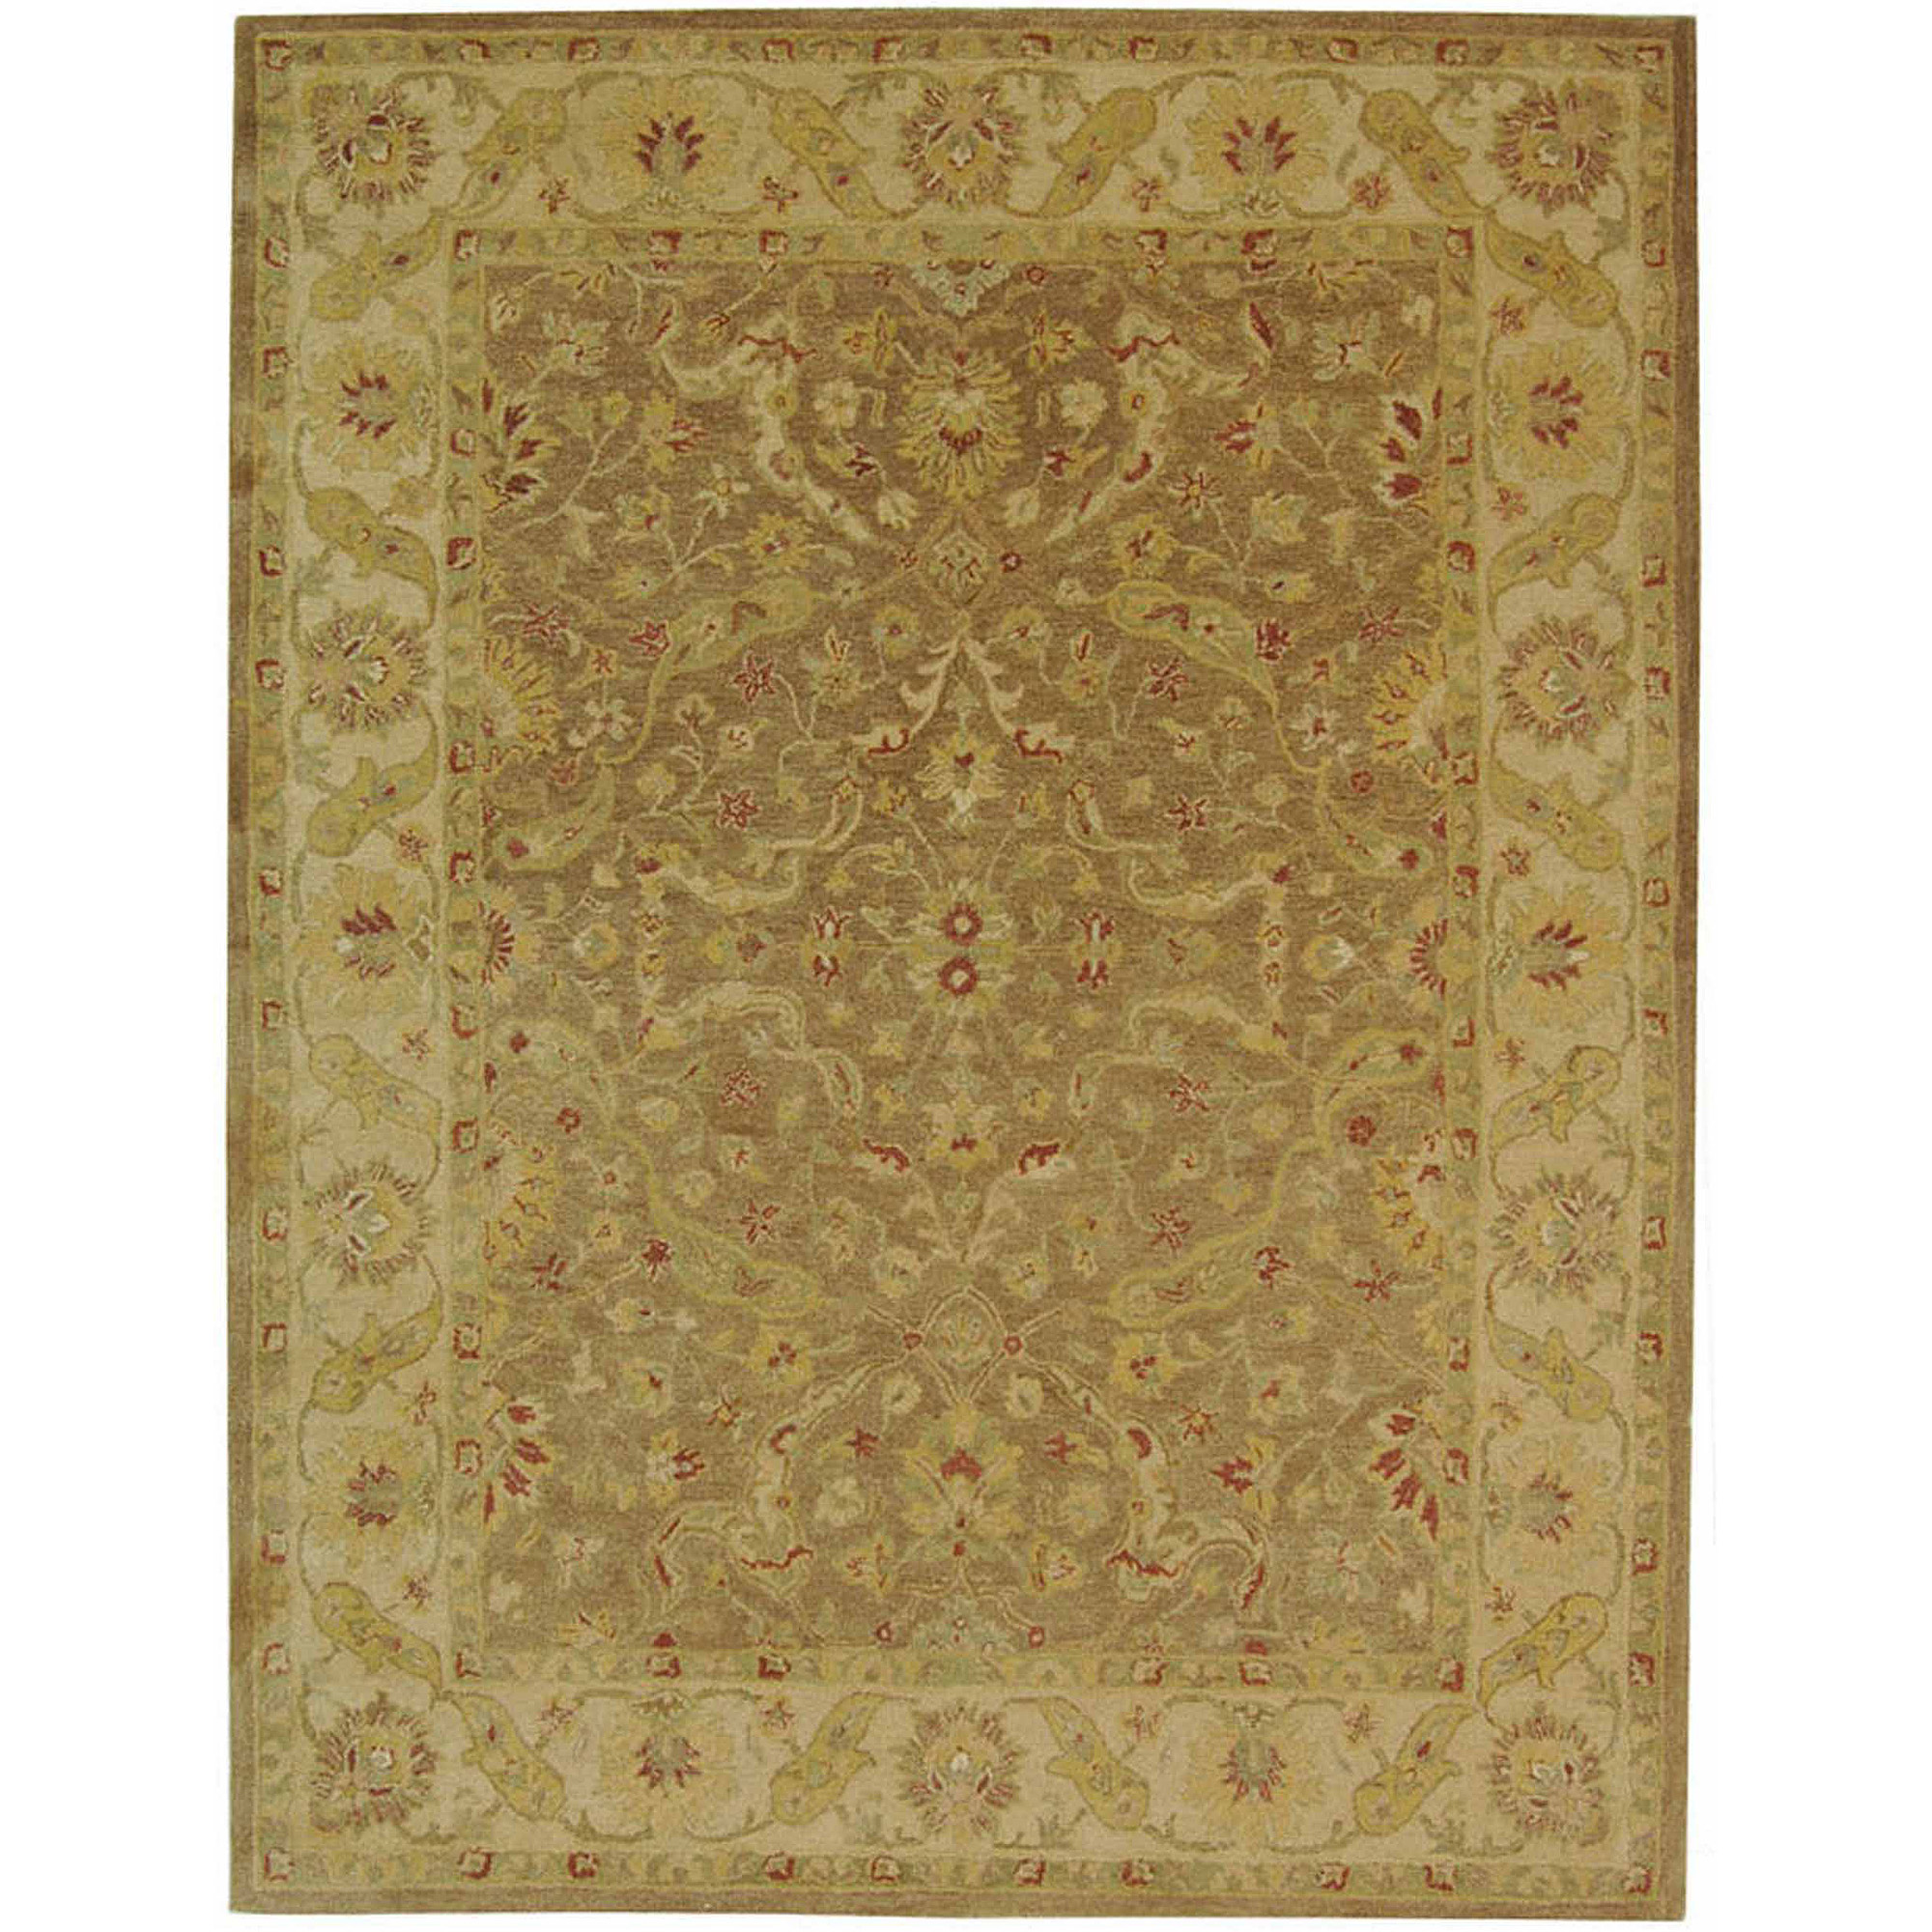 Safavieh Antiquity Ronni Hand Tufted Wool Area Rug